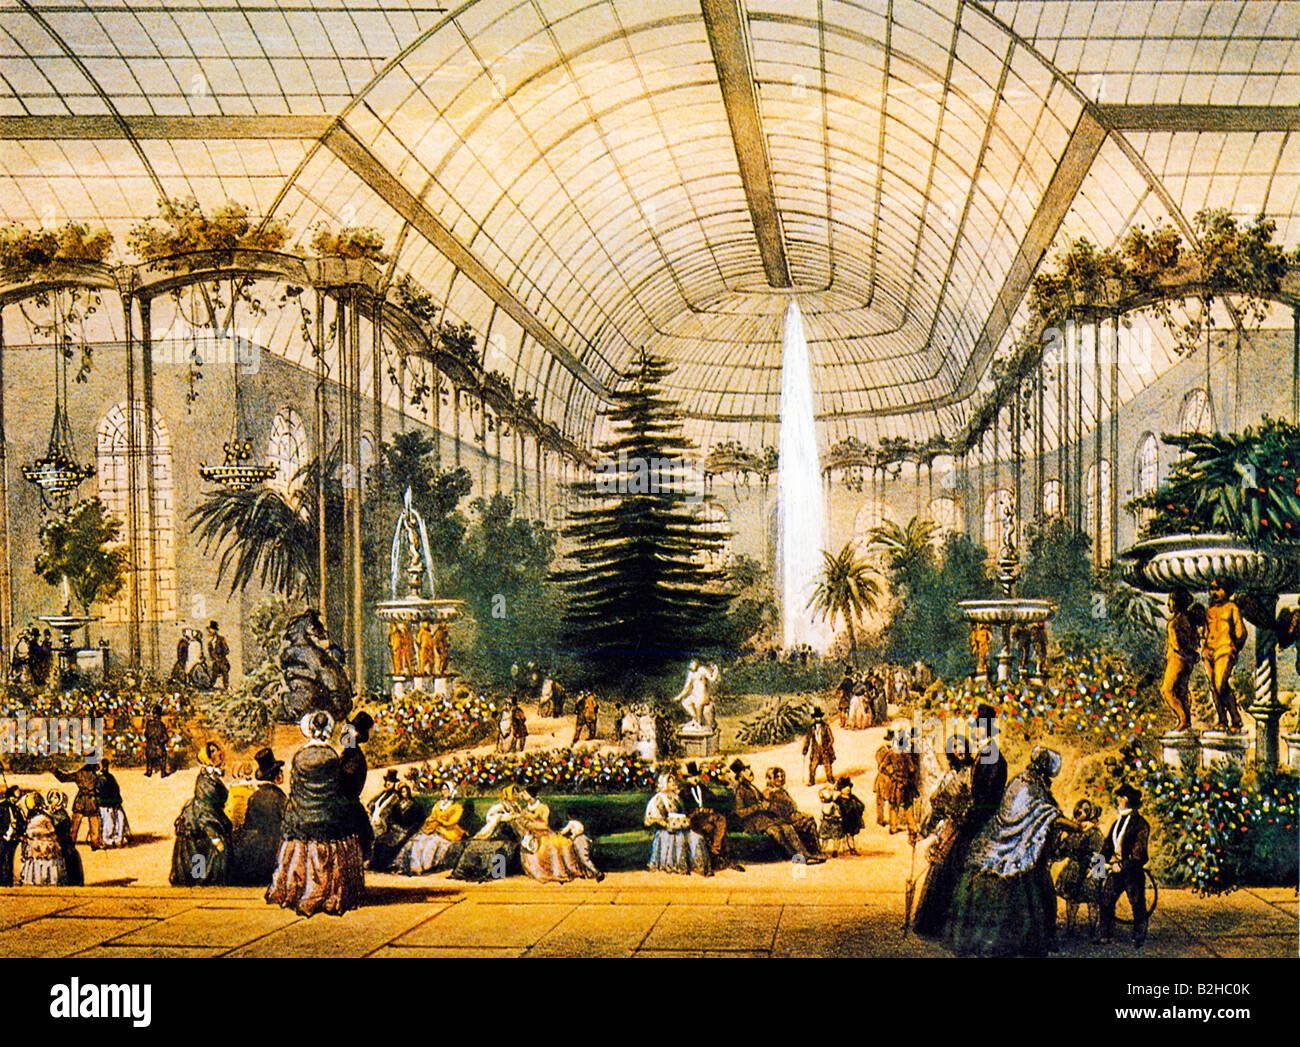 le jardin d hiver des champs elysees print of the glasshouse in paris stock photo royalty free. Black Bedroom Furniture Sets. Home Design Ideas